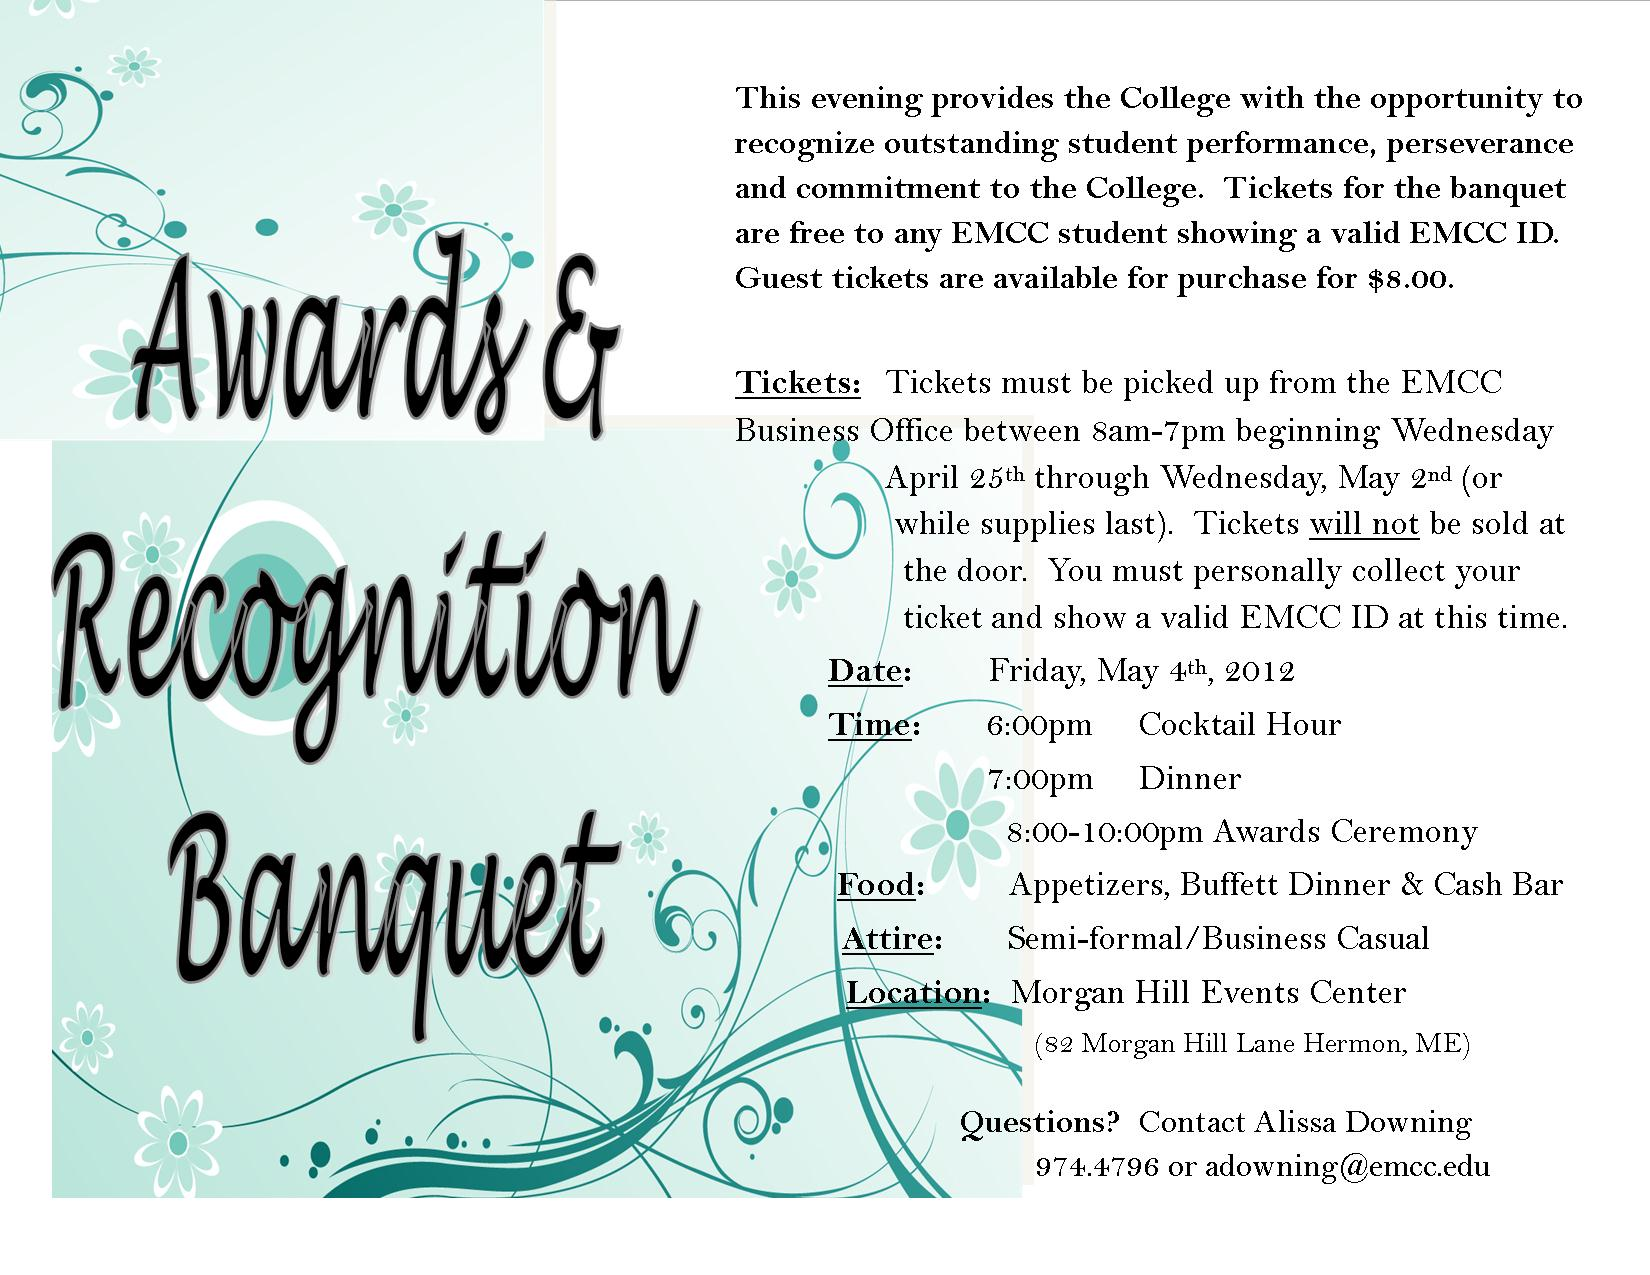 Sports Banquet Invitation Samples